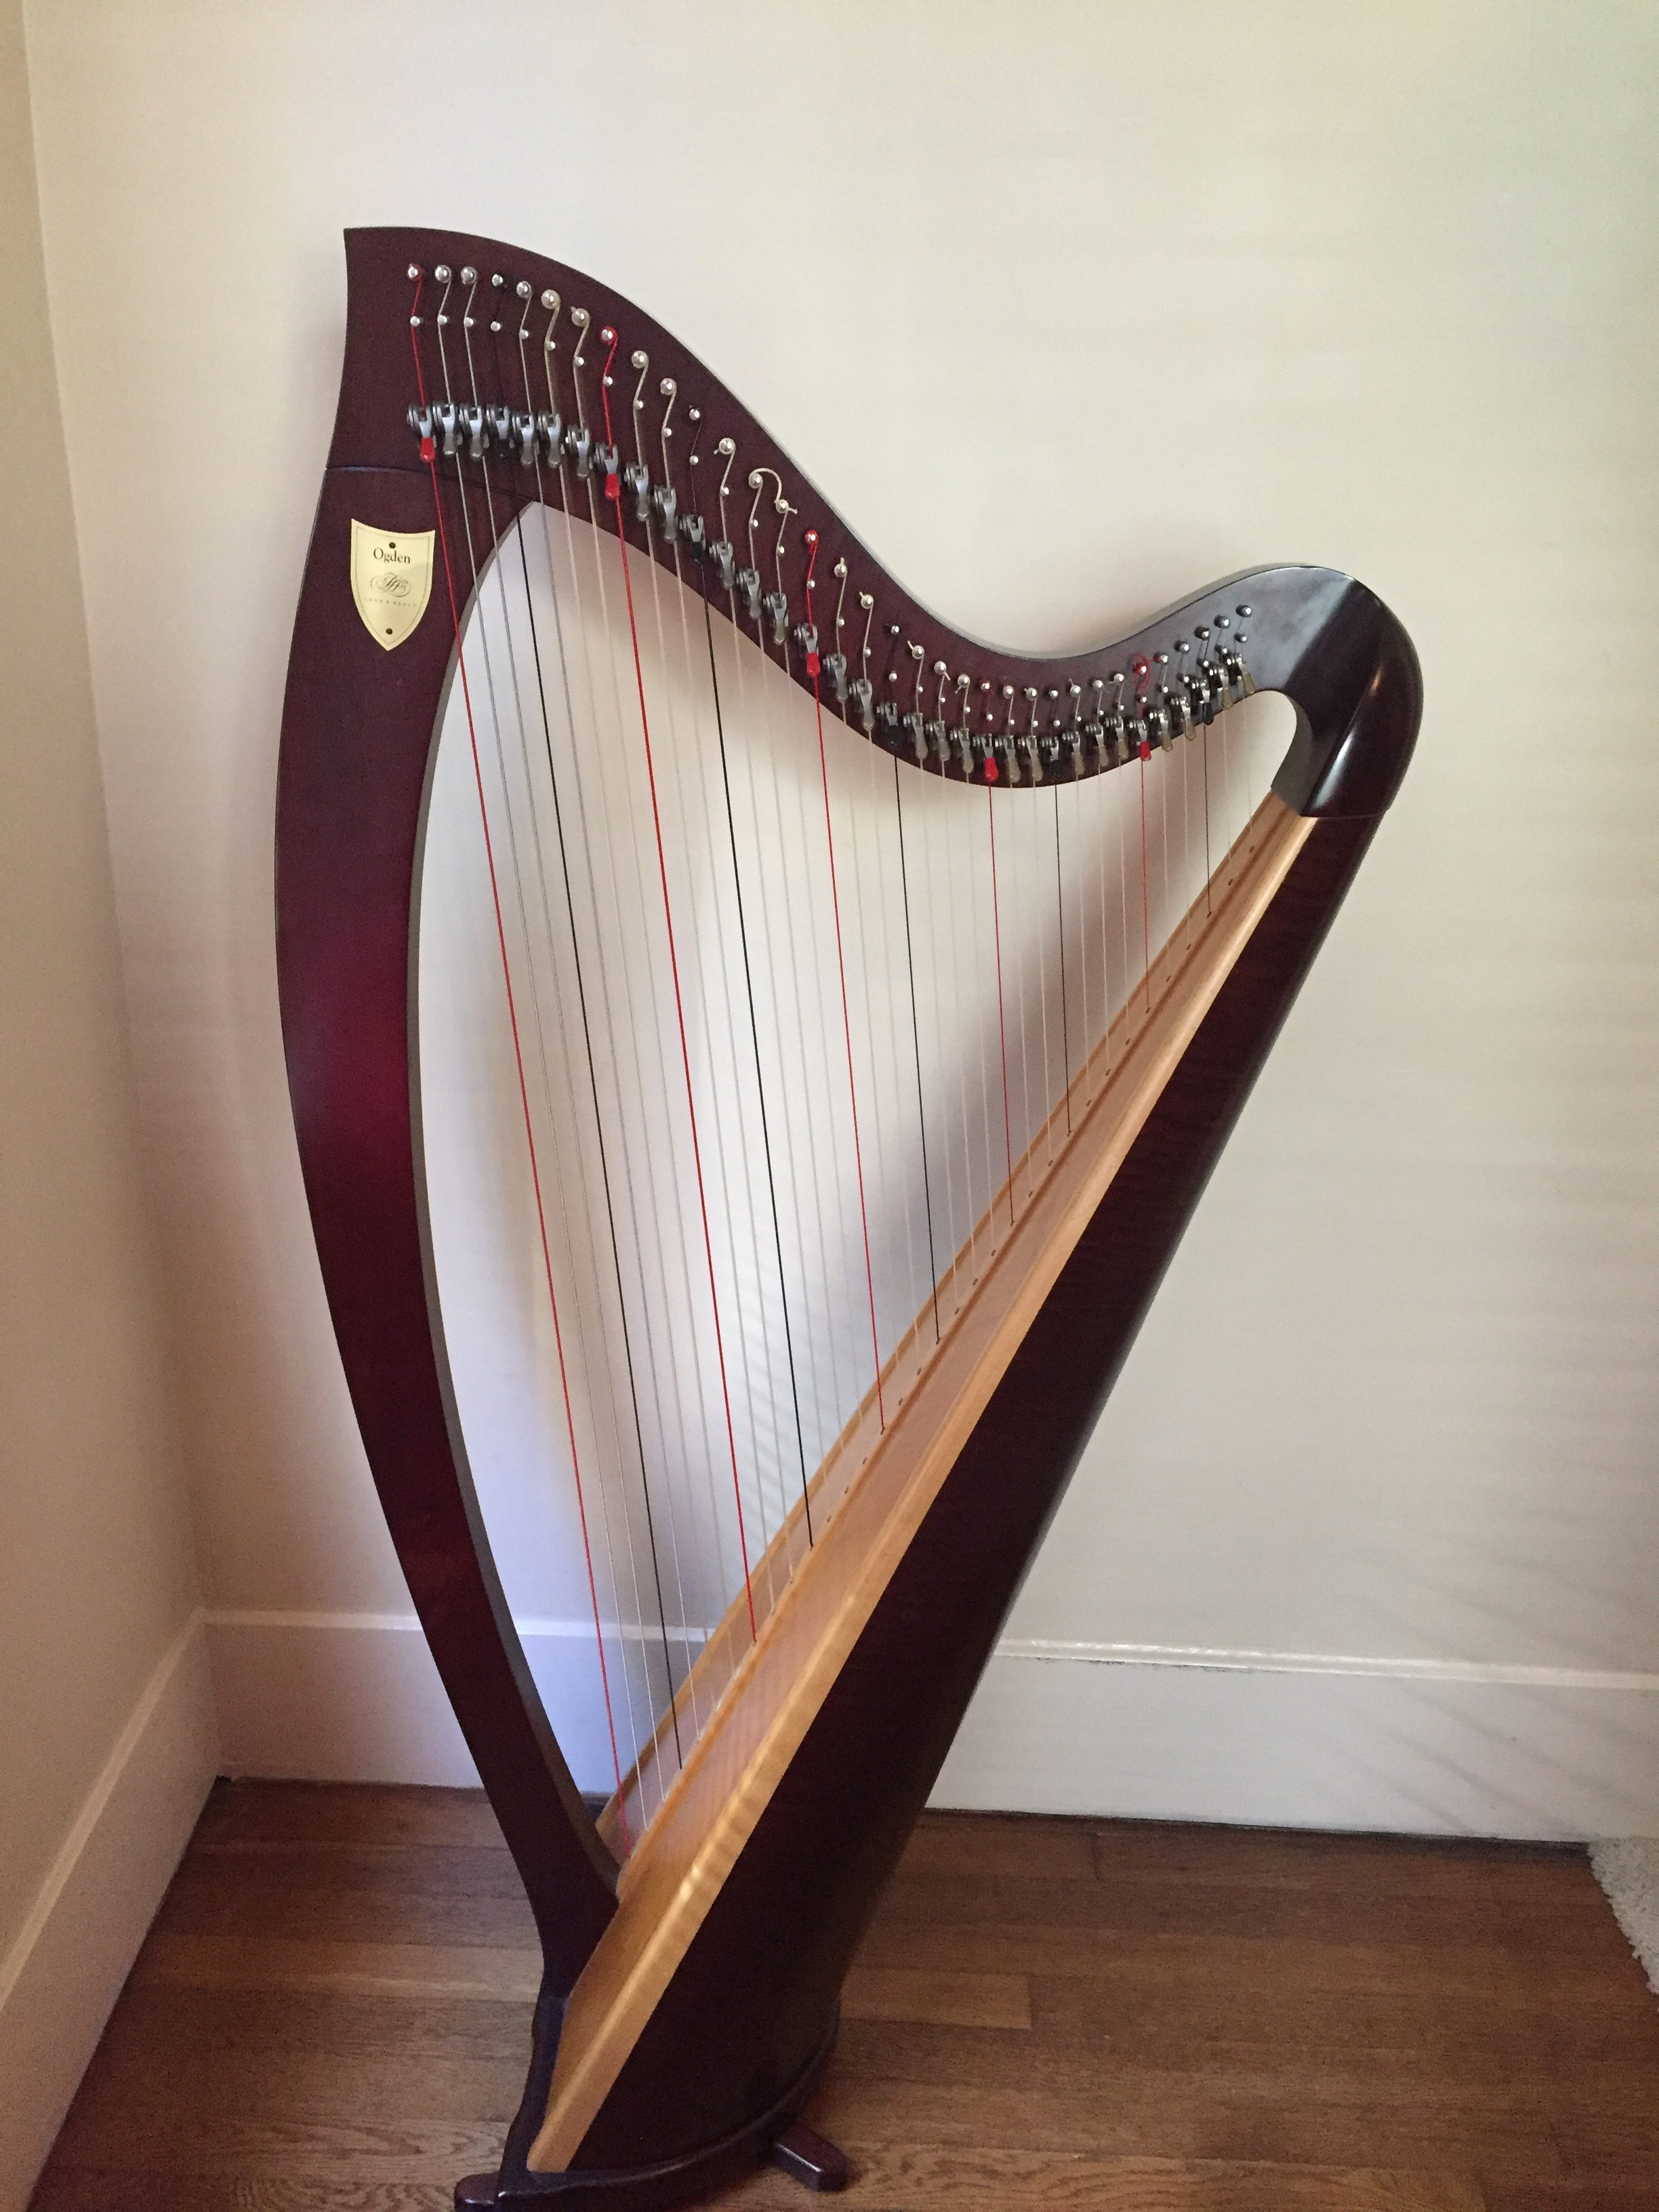 Lyon and Healy Ogden Lever Harp for Rent